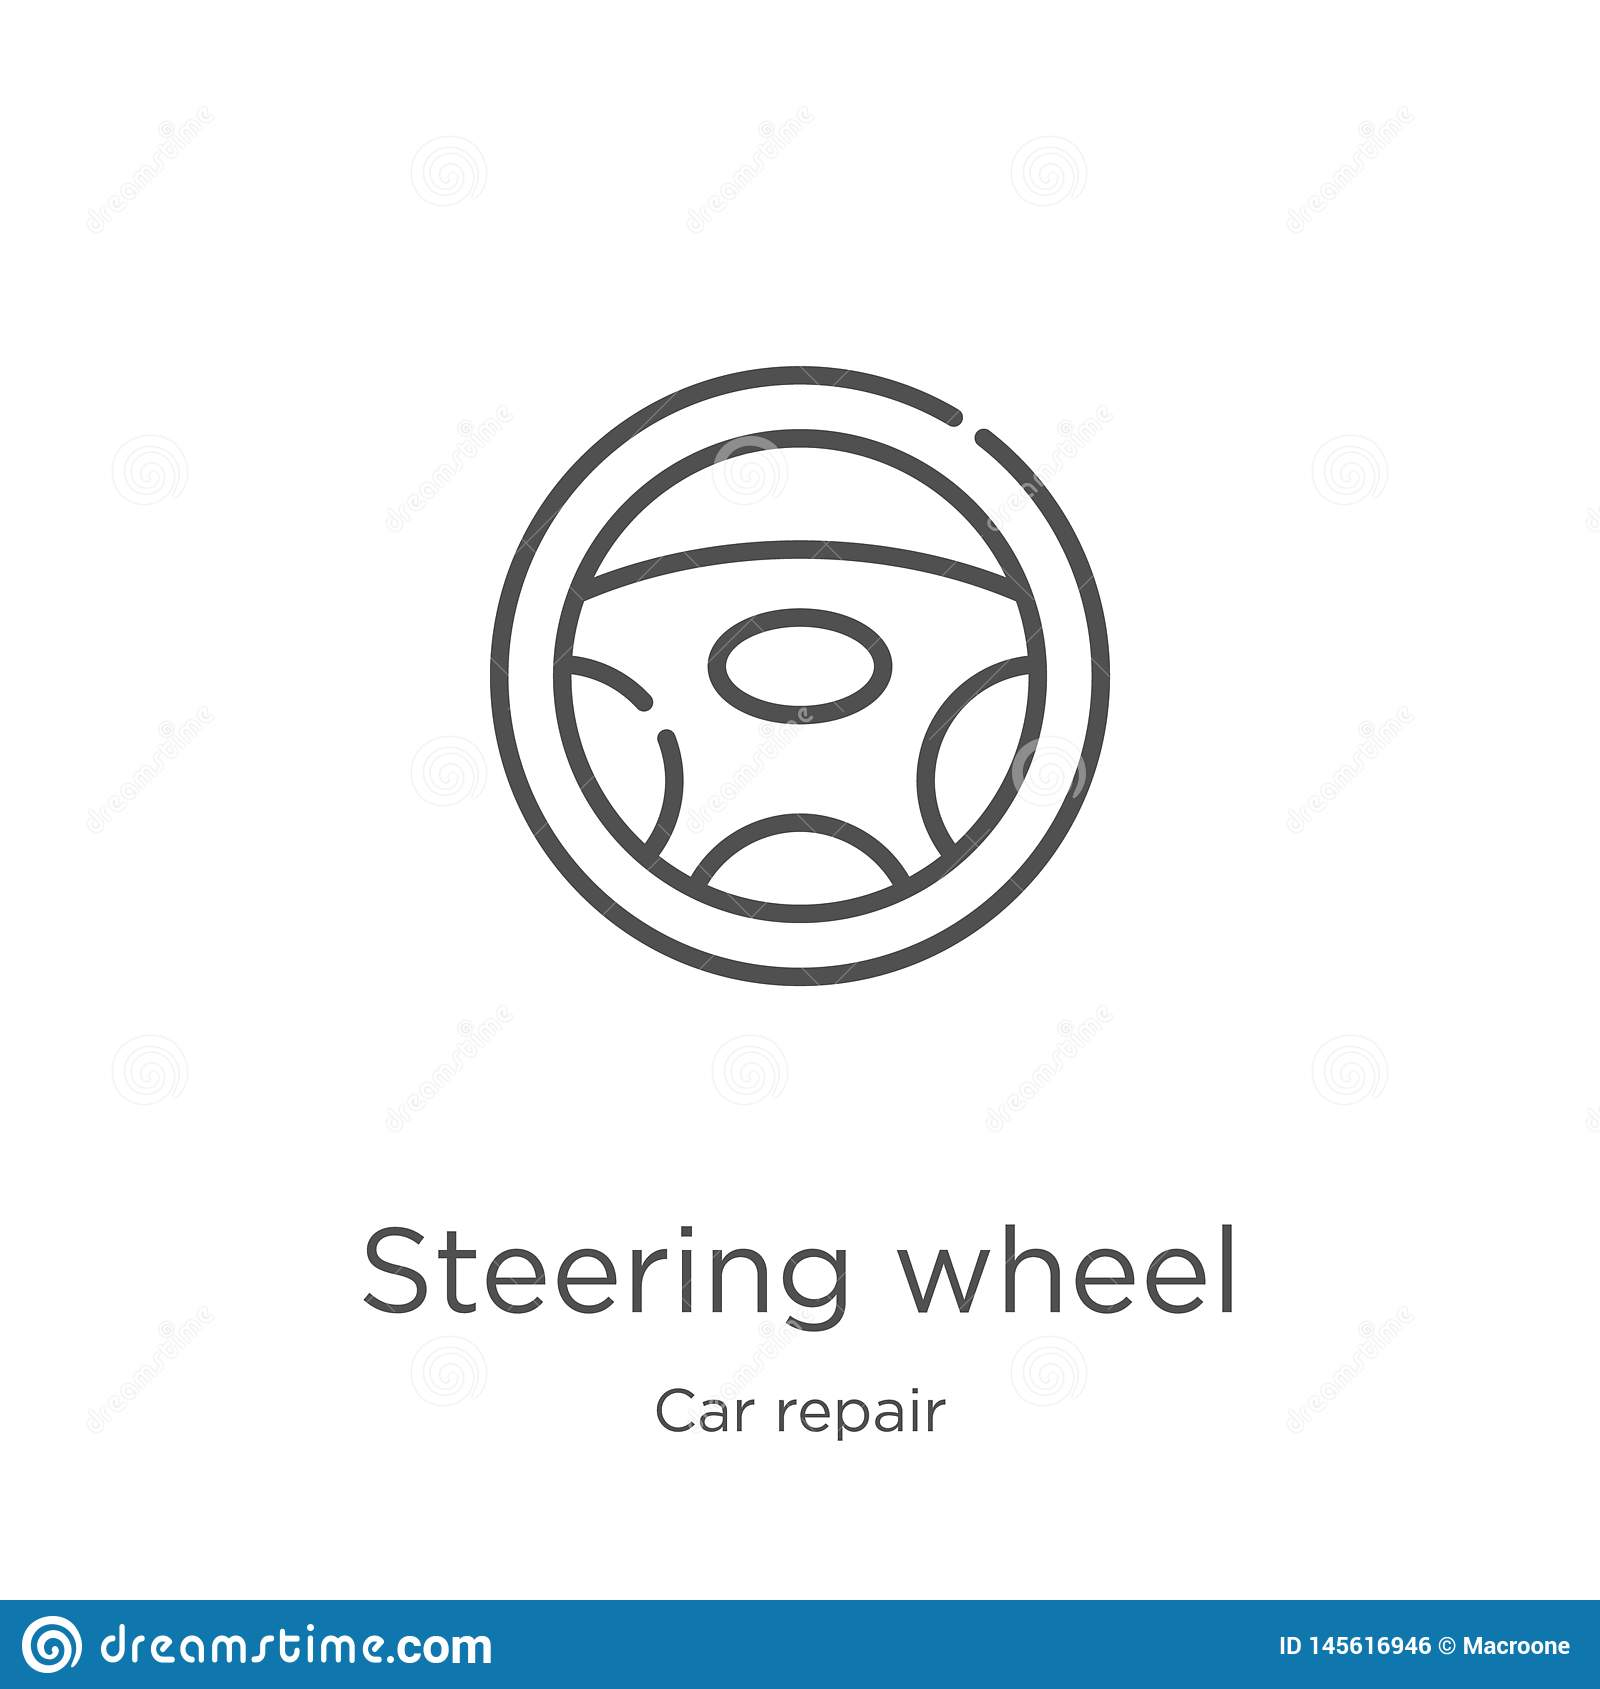 steering wheel icon vector from car repair collection. Thin line steering wheel outline icon vector illustration. Outline, thin